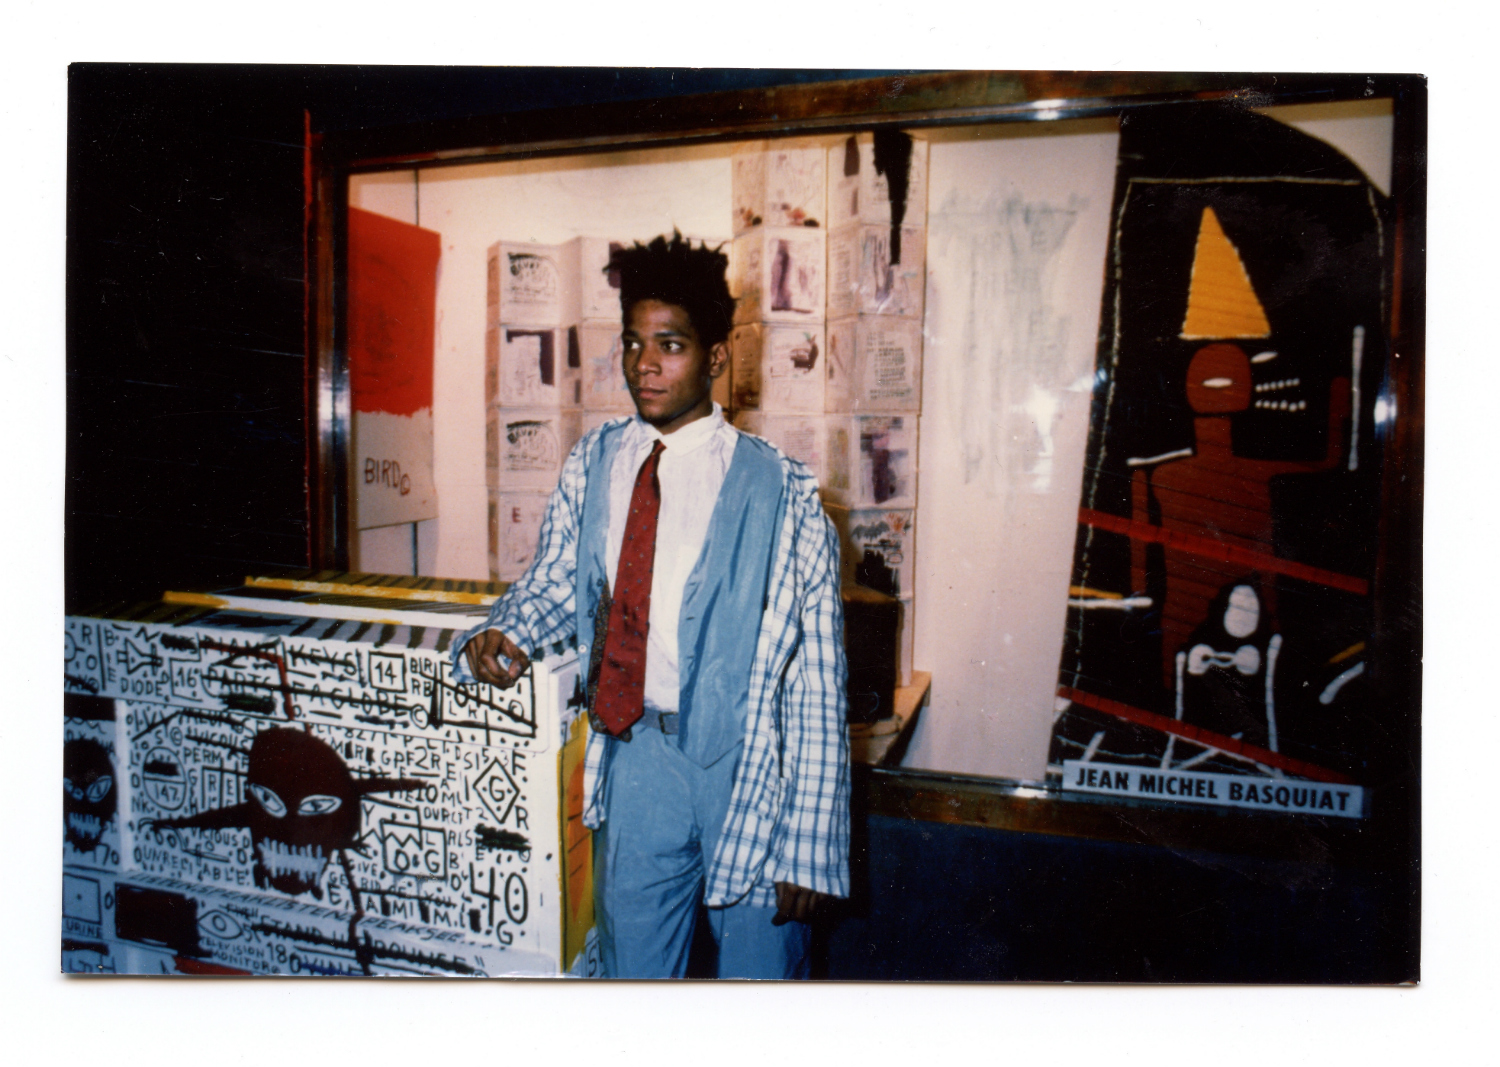 frankfurt exhibition basquiat fashion influence